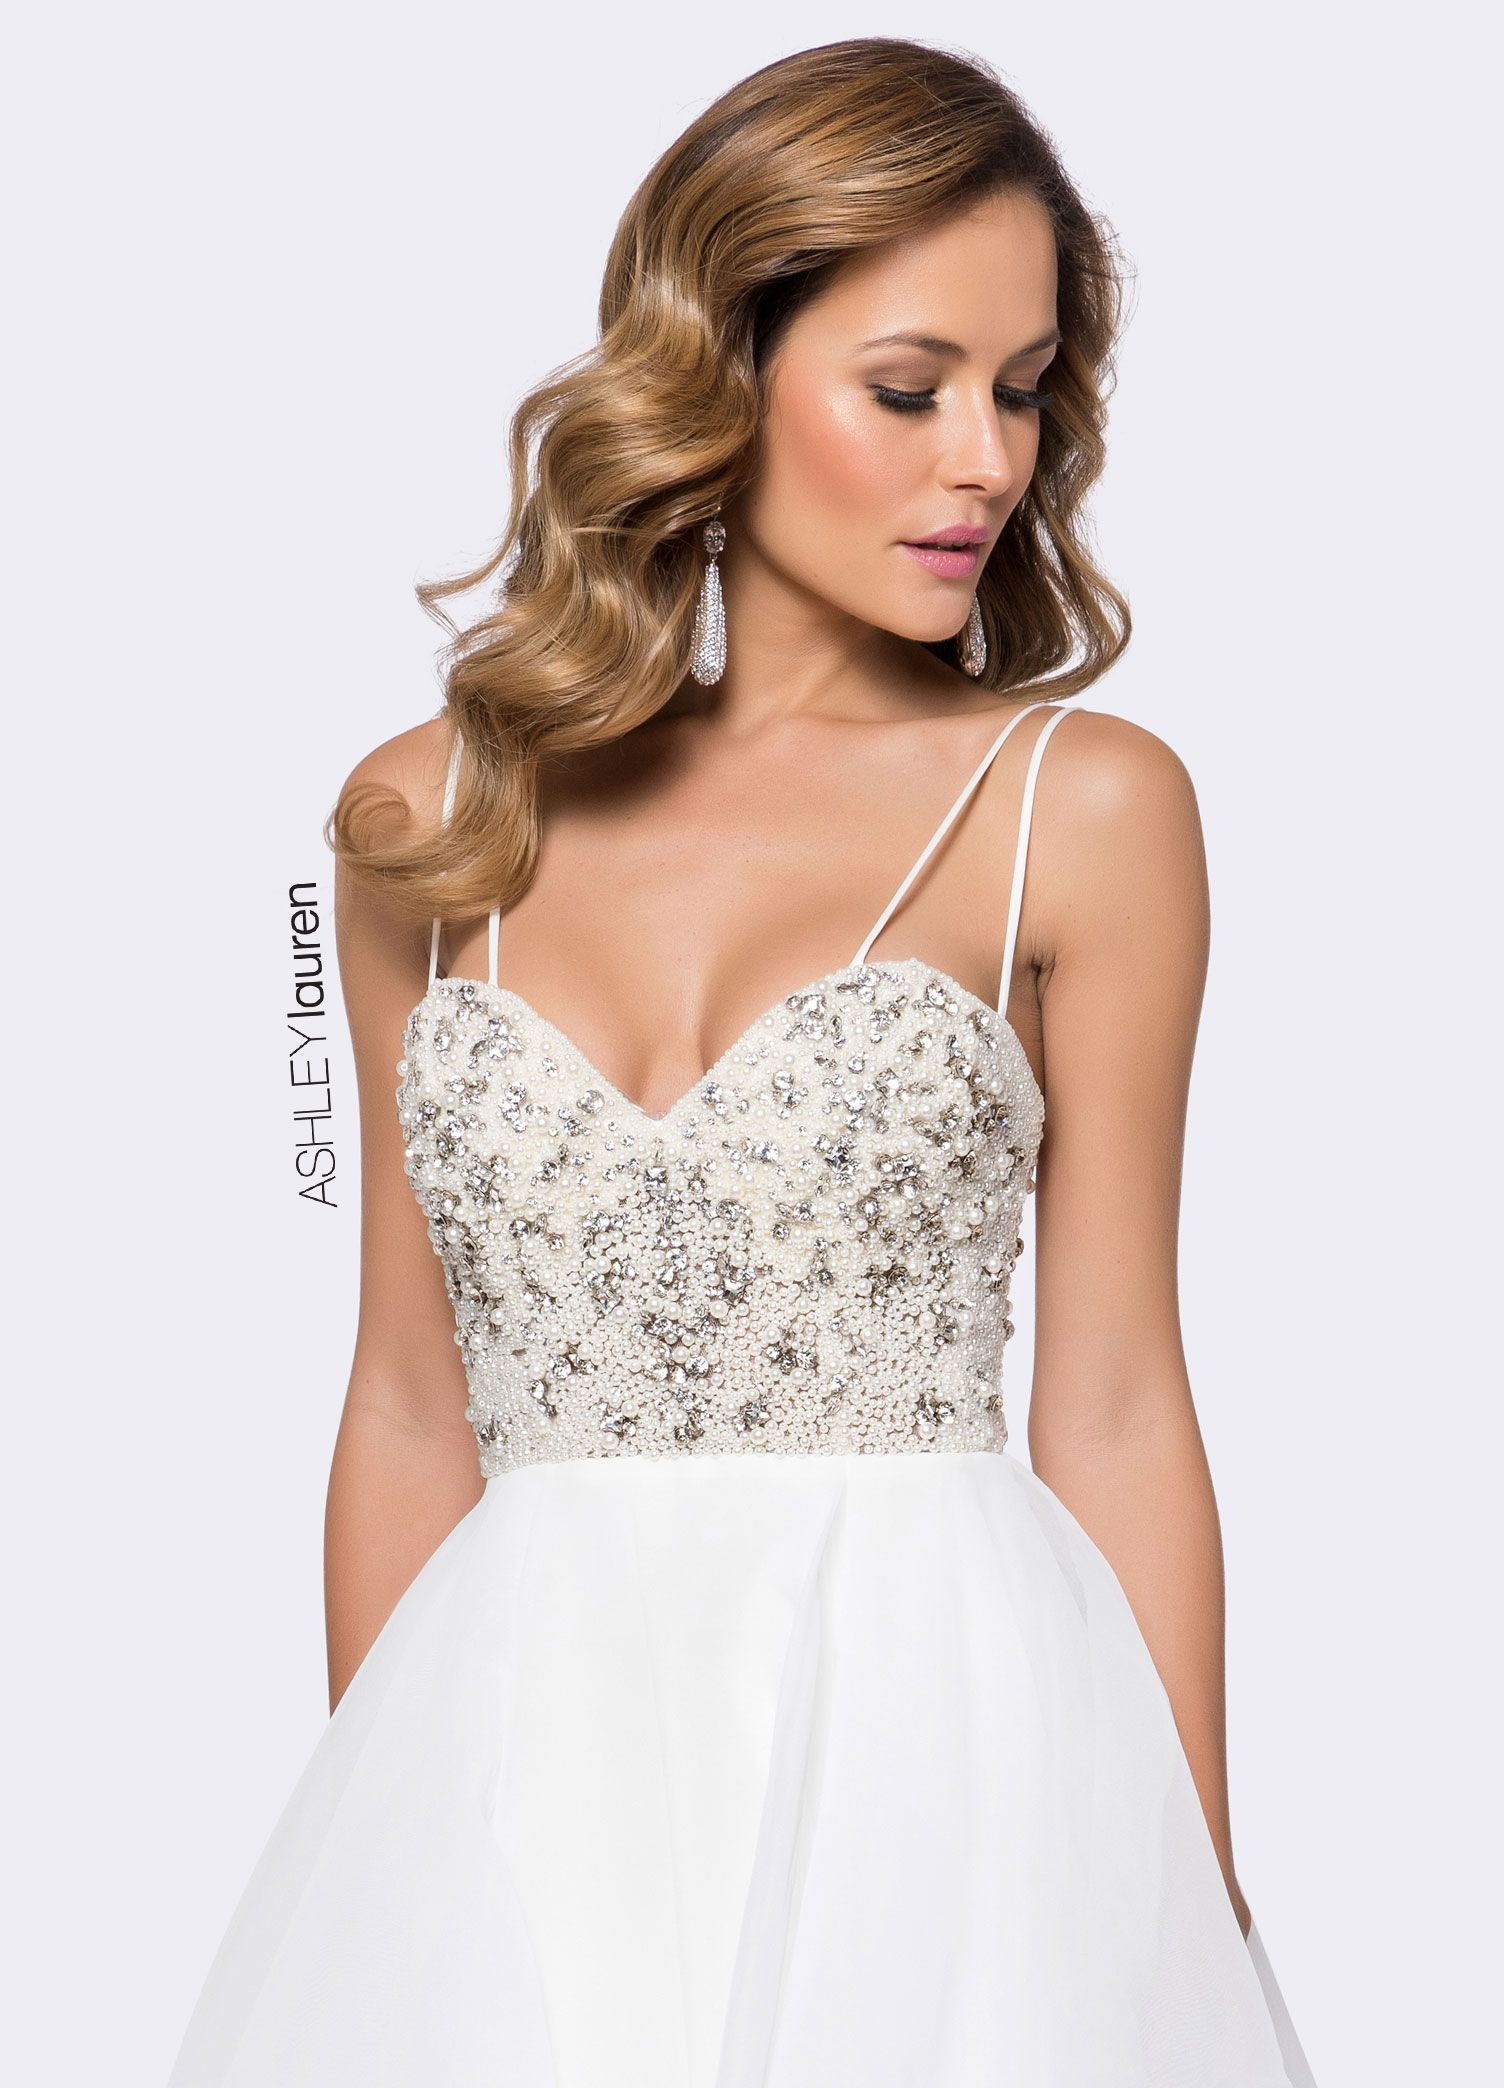 Style ashleylauren modern bridal dress with pearl